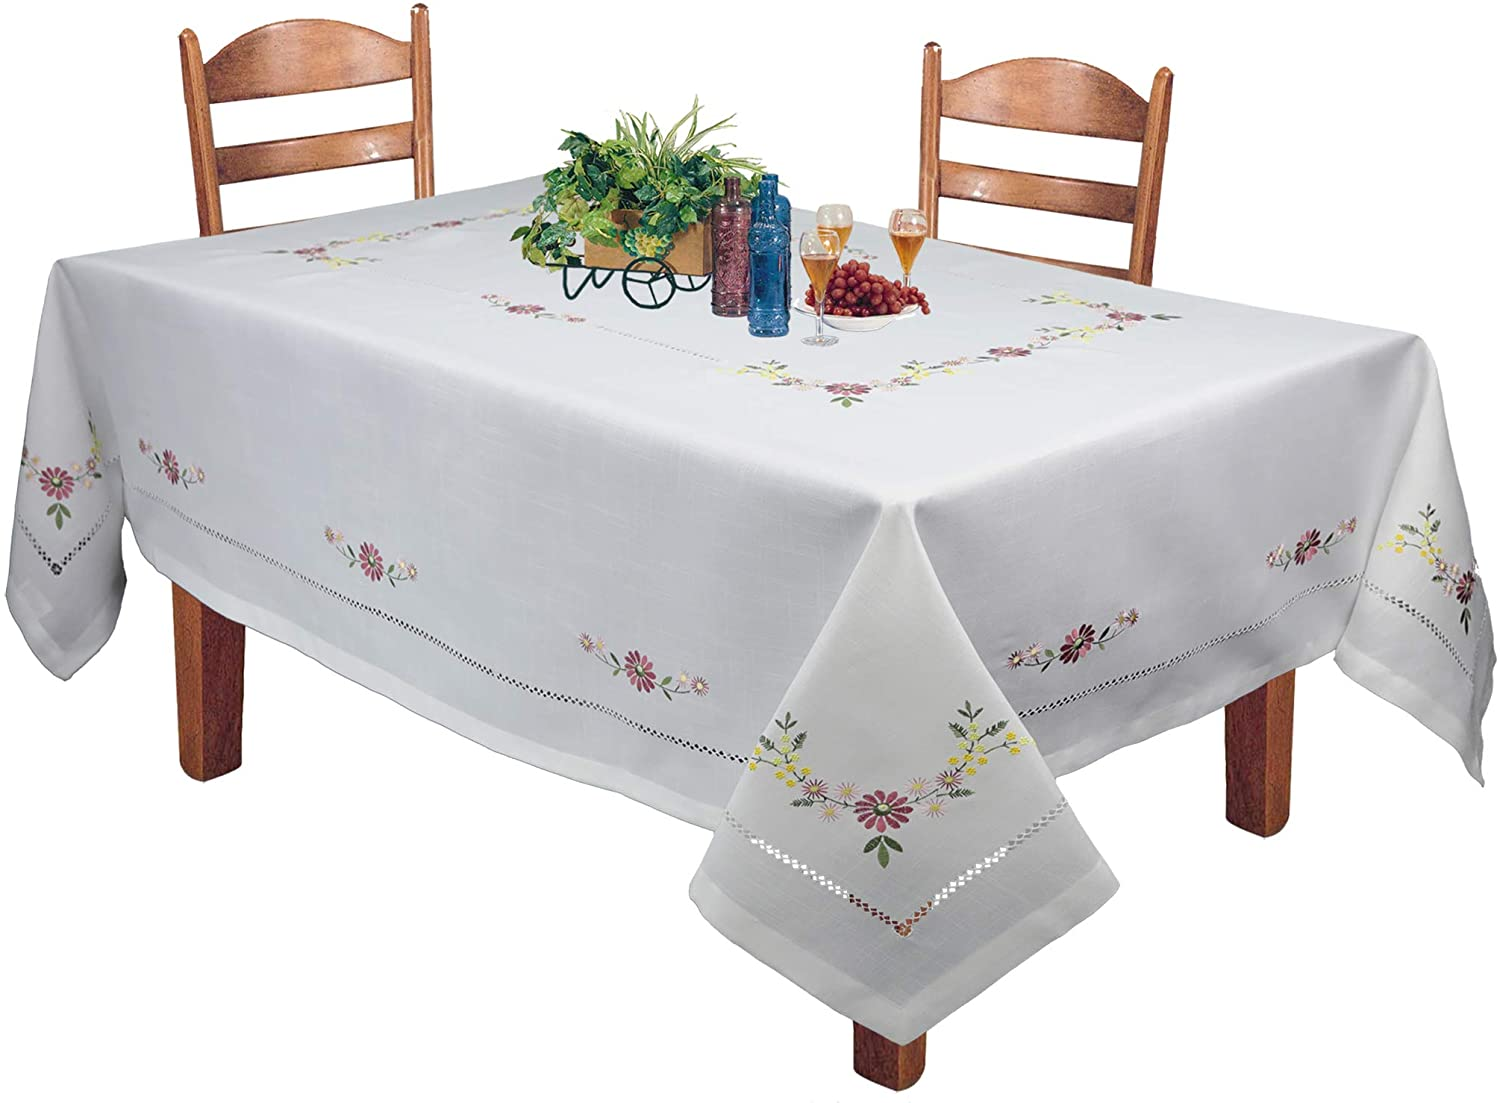 Creative Linens Hemstitched Embroidered Daisy Flower Tablecloth 70x140 Rectangular Table Cover White